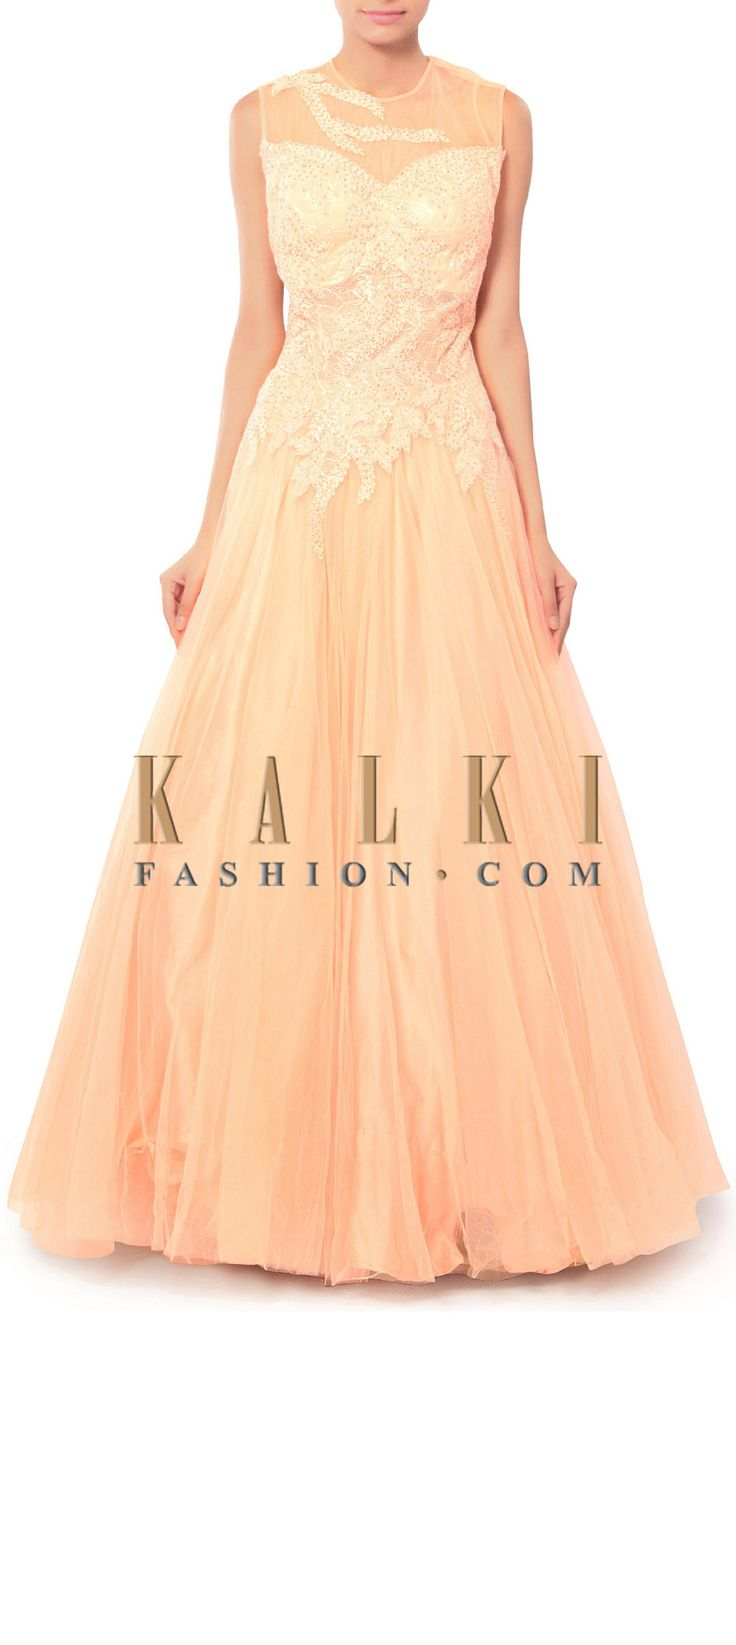 http://www.kalkifashion.com/baby-pink-gown-adorn-in-thread-and-kundan-embroidery-only-on-kalki.html